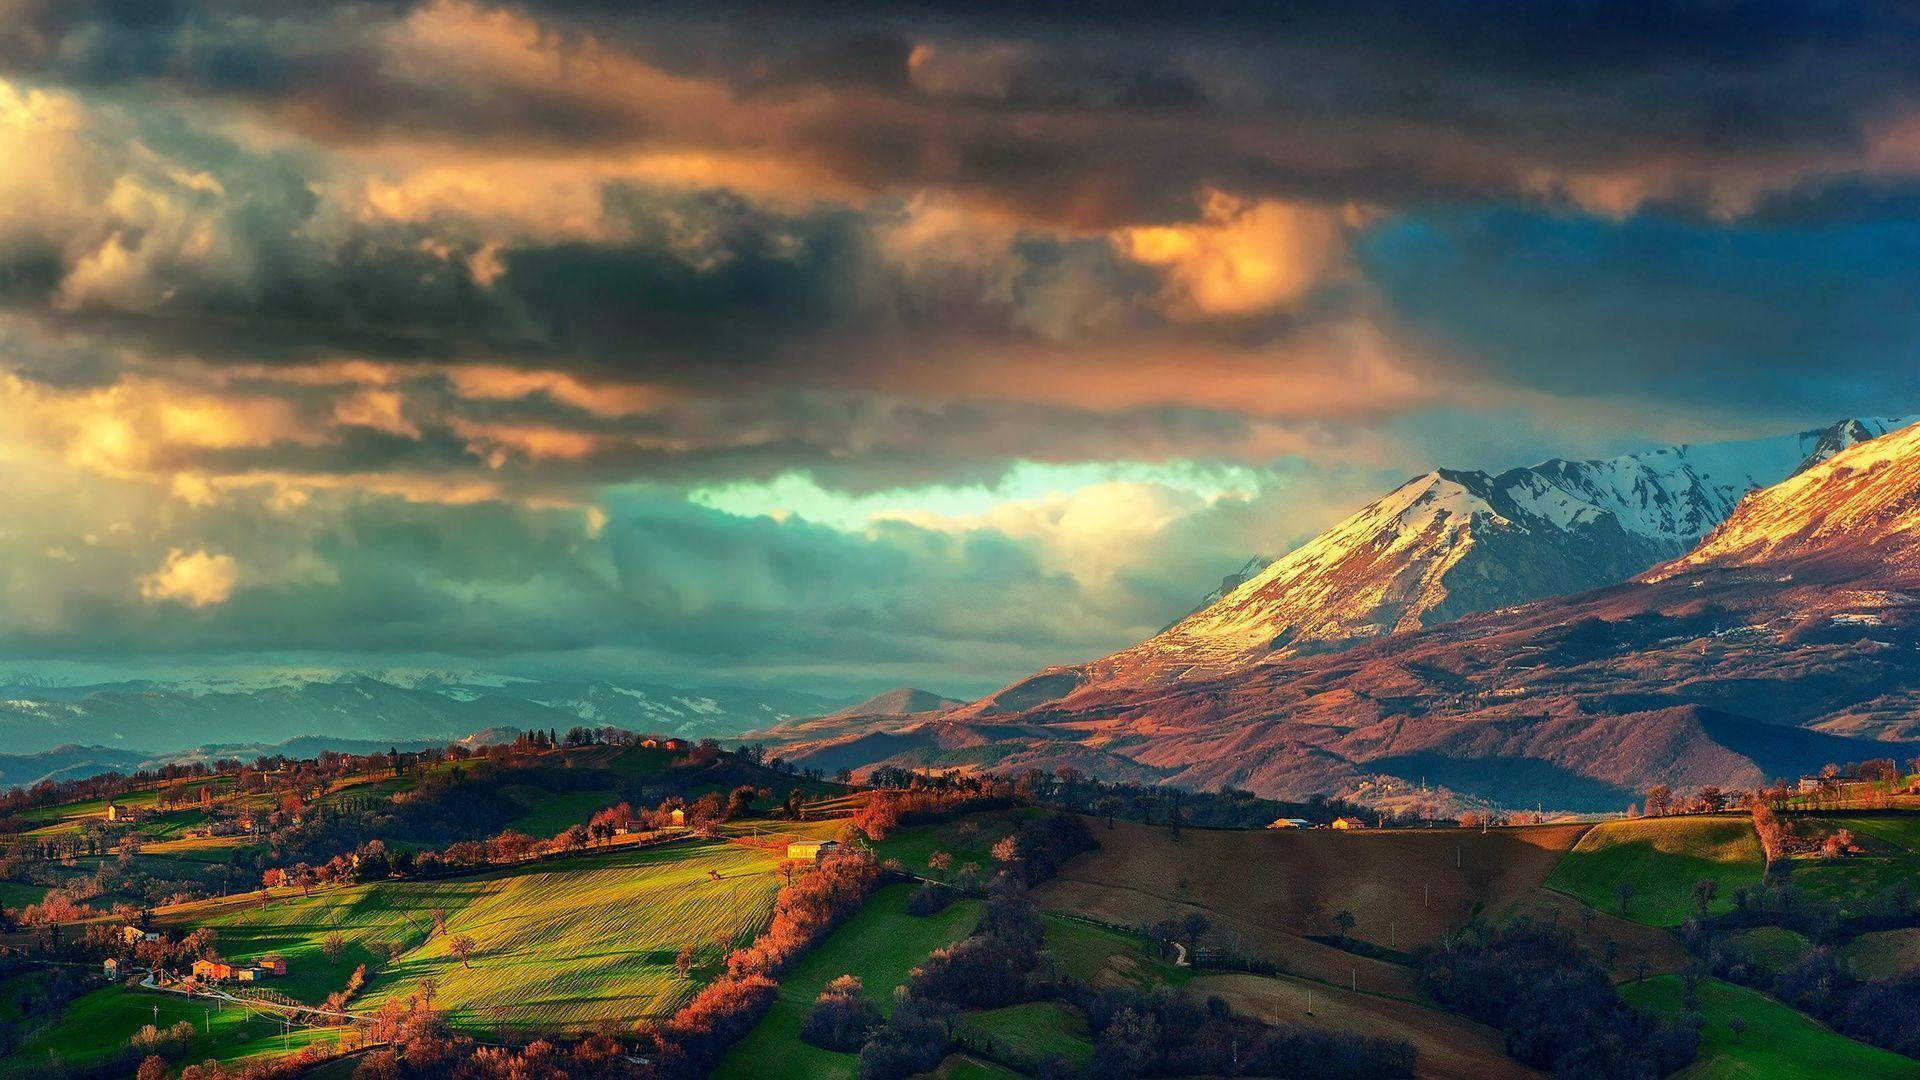 landscape wallpaper desktop - photo #44